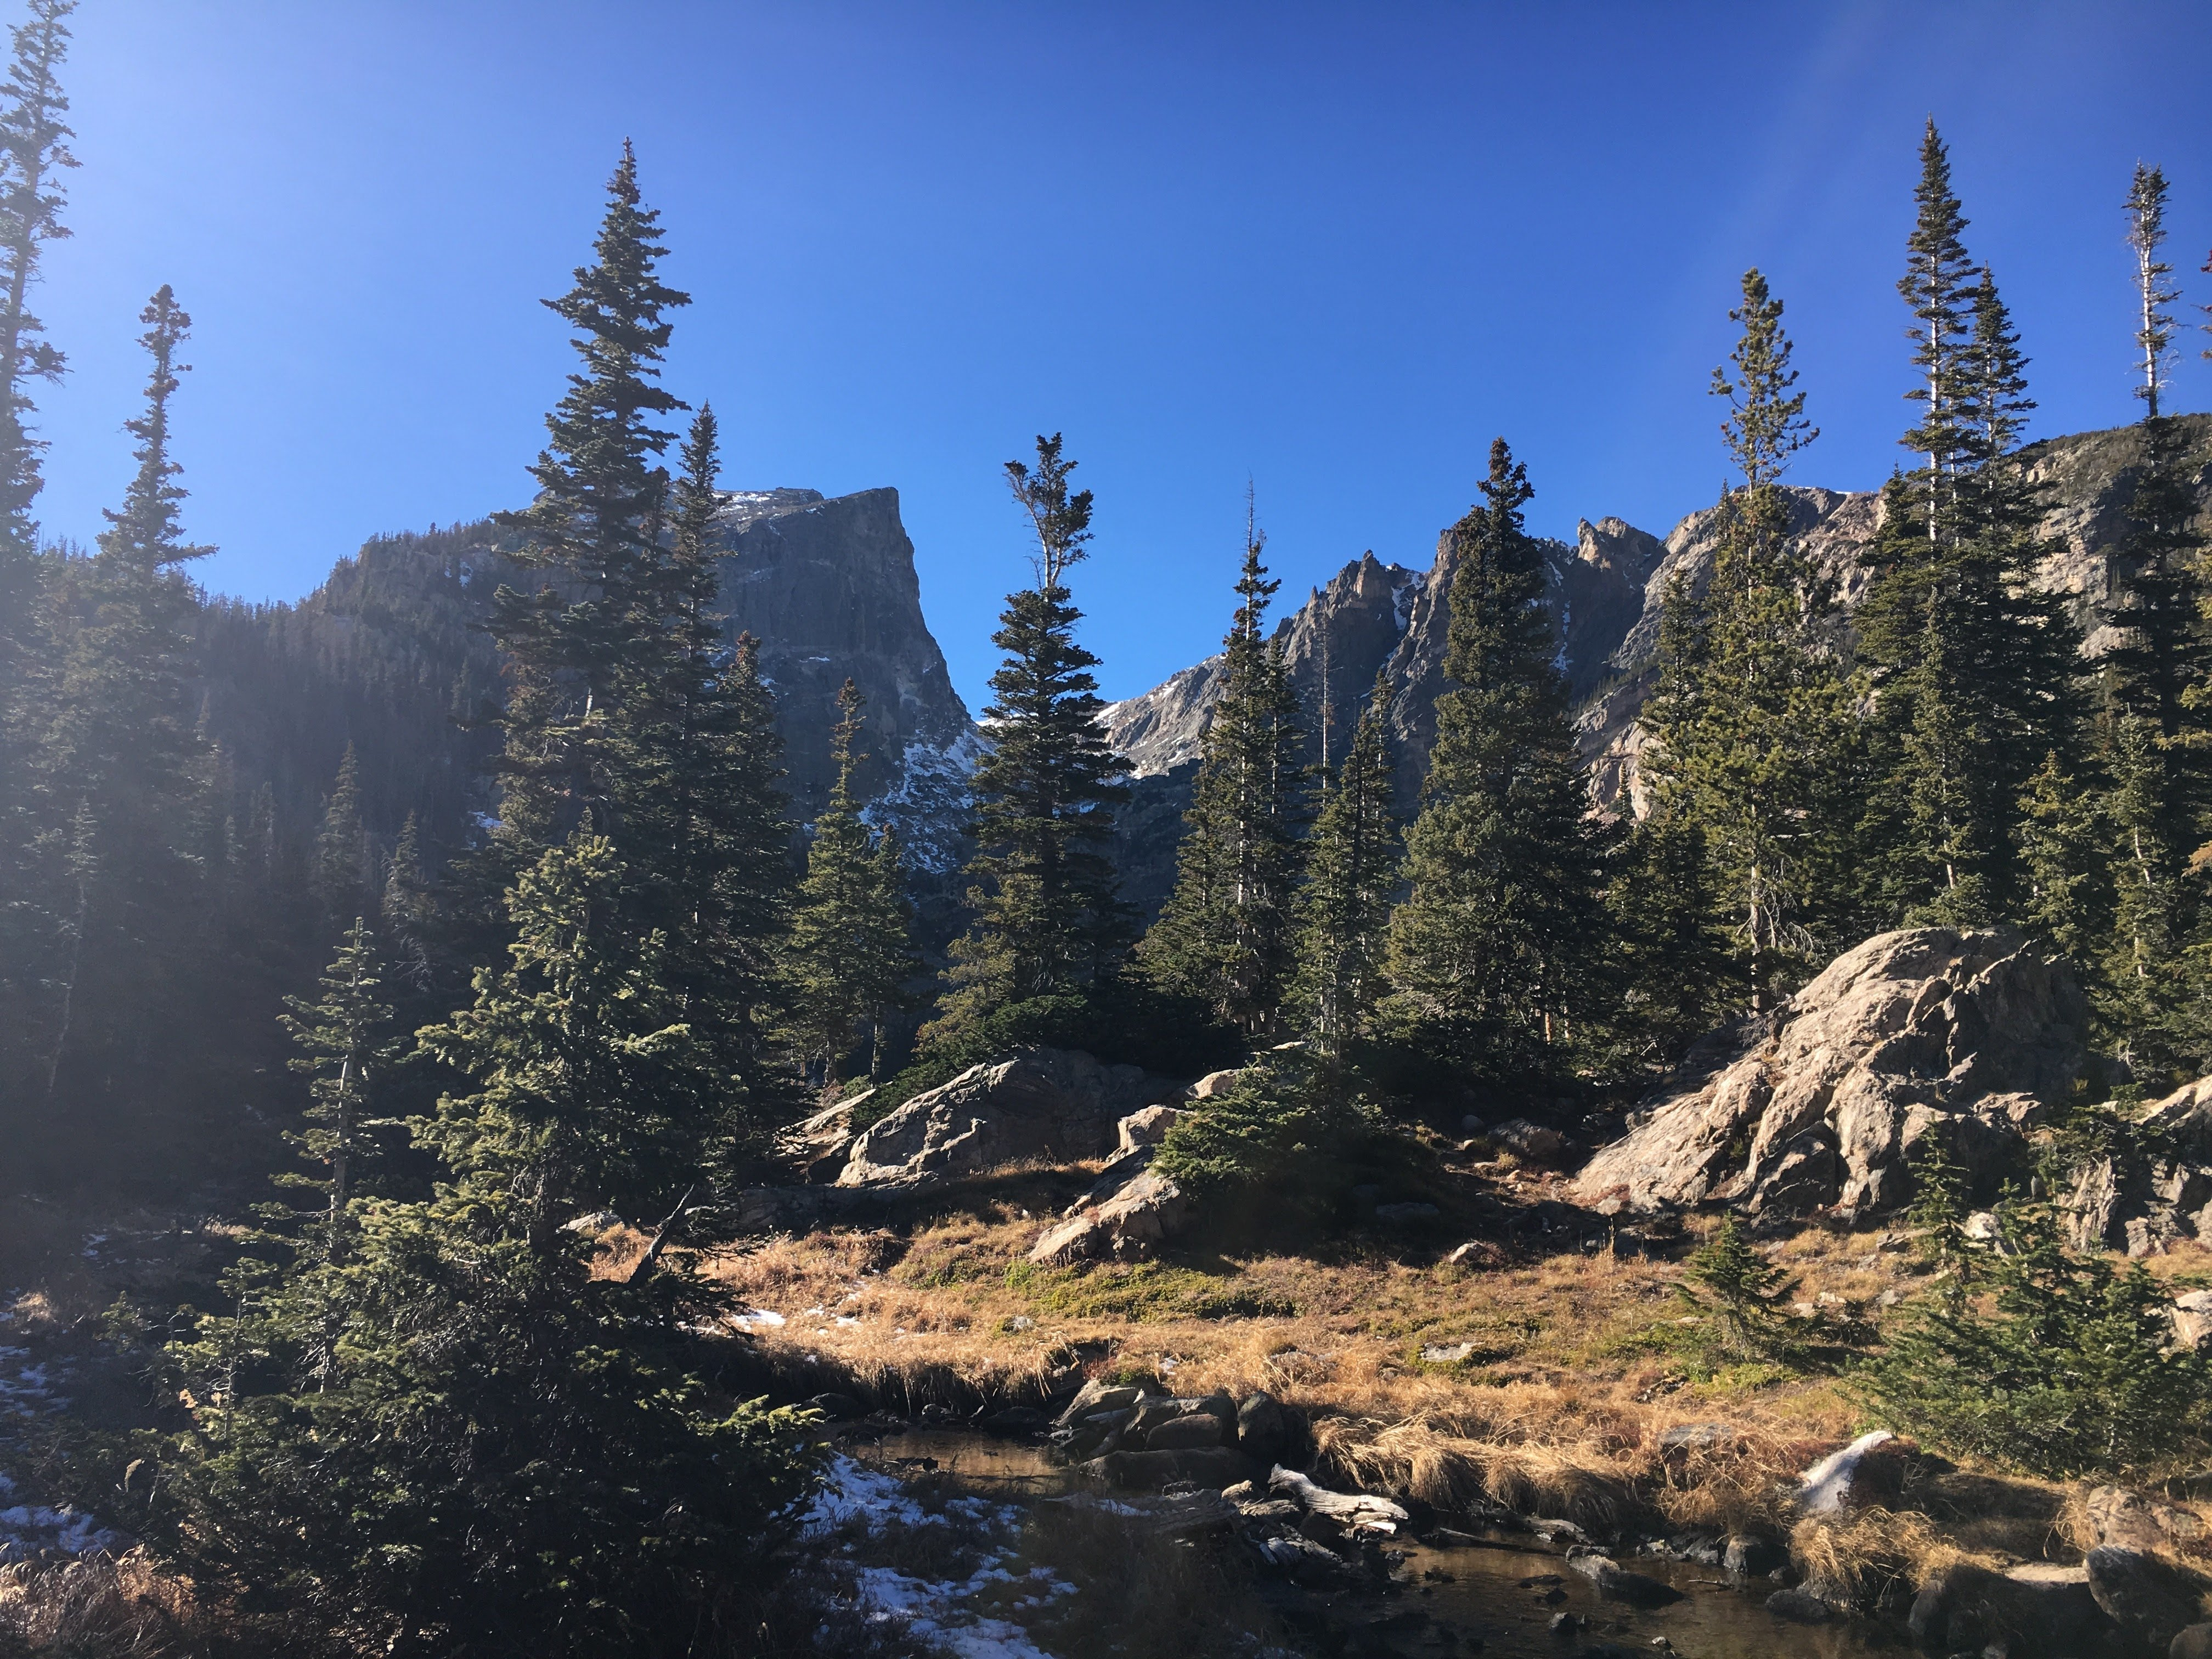 Traveling in Rocky Mountain National Park after starting a digital marketing business